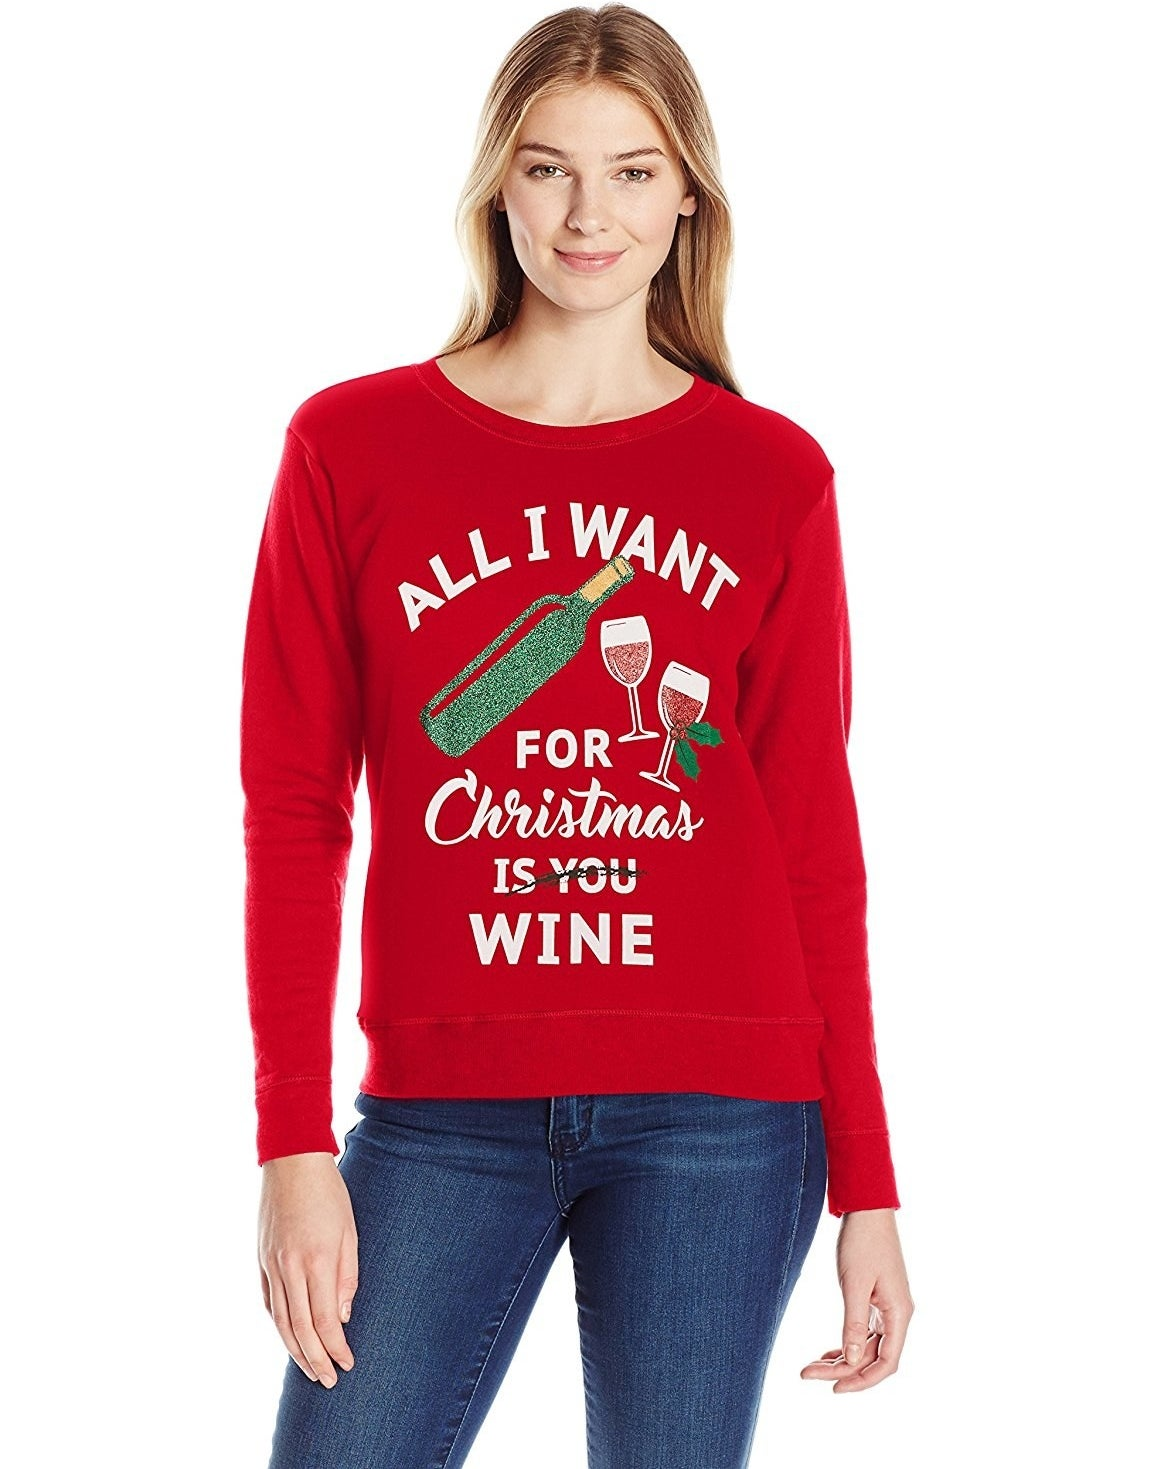 """Promising review: """"I wore it to my work's Christmas party and loved it! The colors were true to the picture and everyone thought it was hilarious!"""" —K.R. Get it from Amazon for $7+. Sizes: S-XL."""